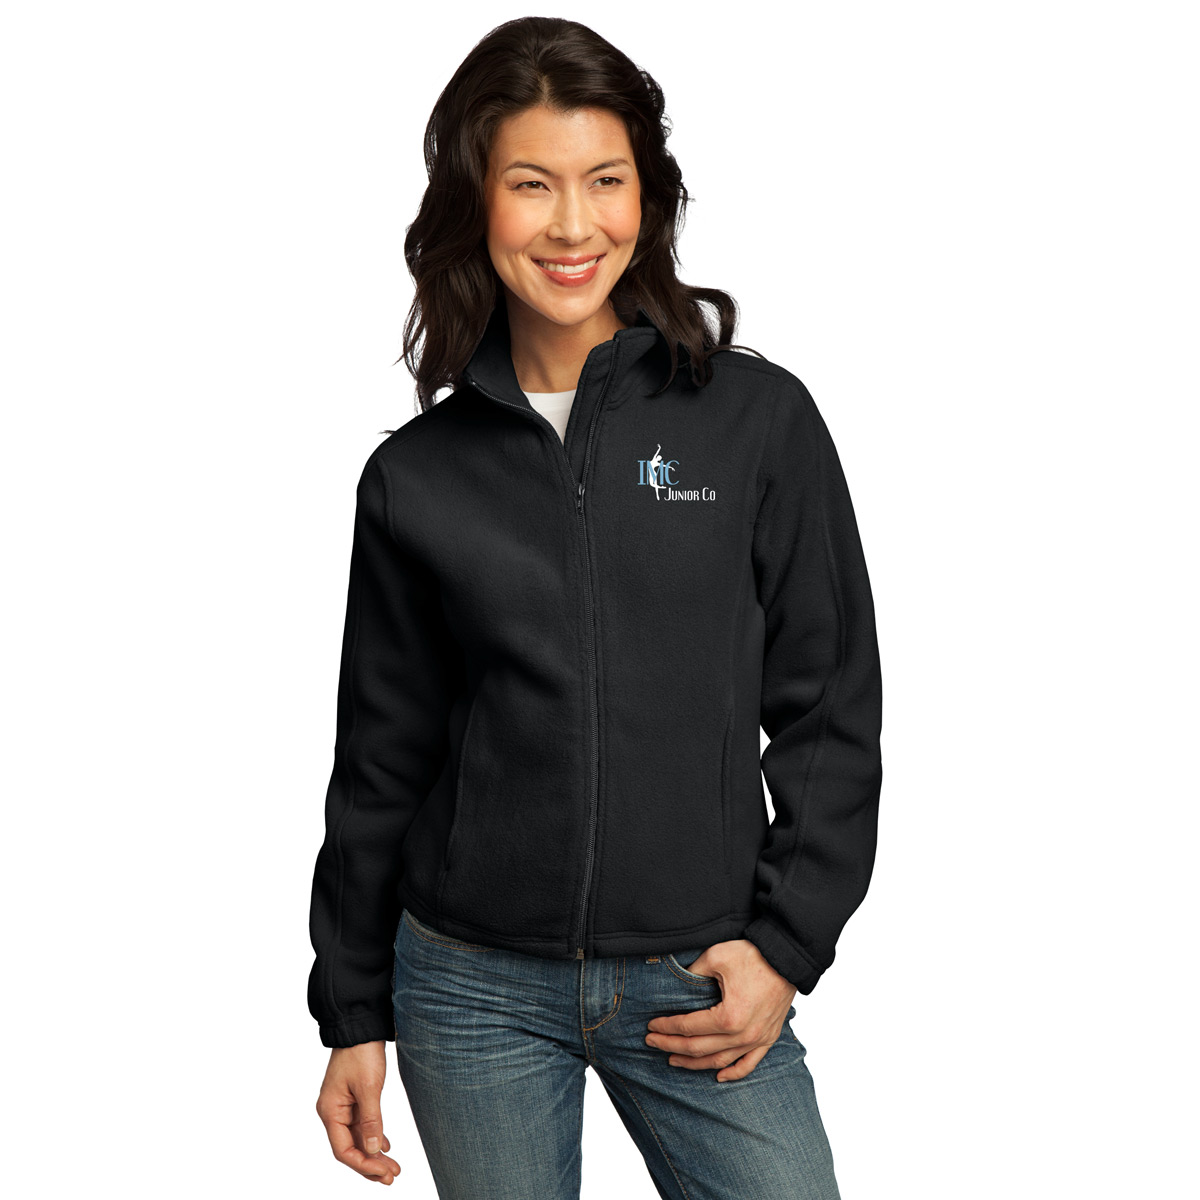 IMC - WOMEN'S FLEECE JACKET